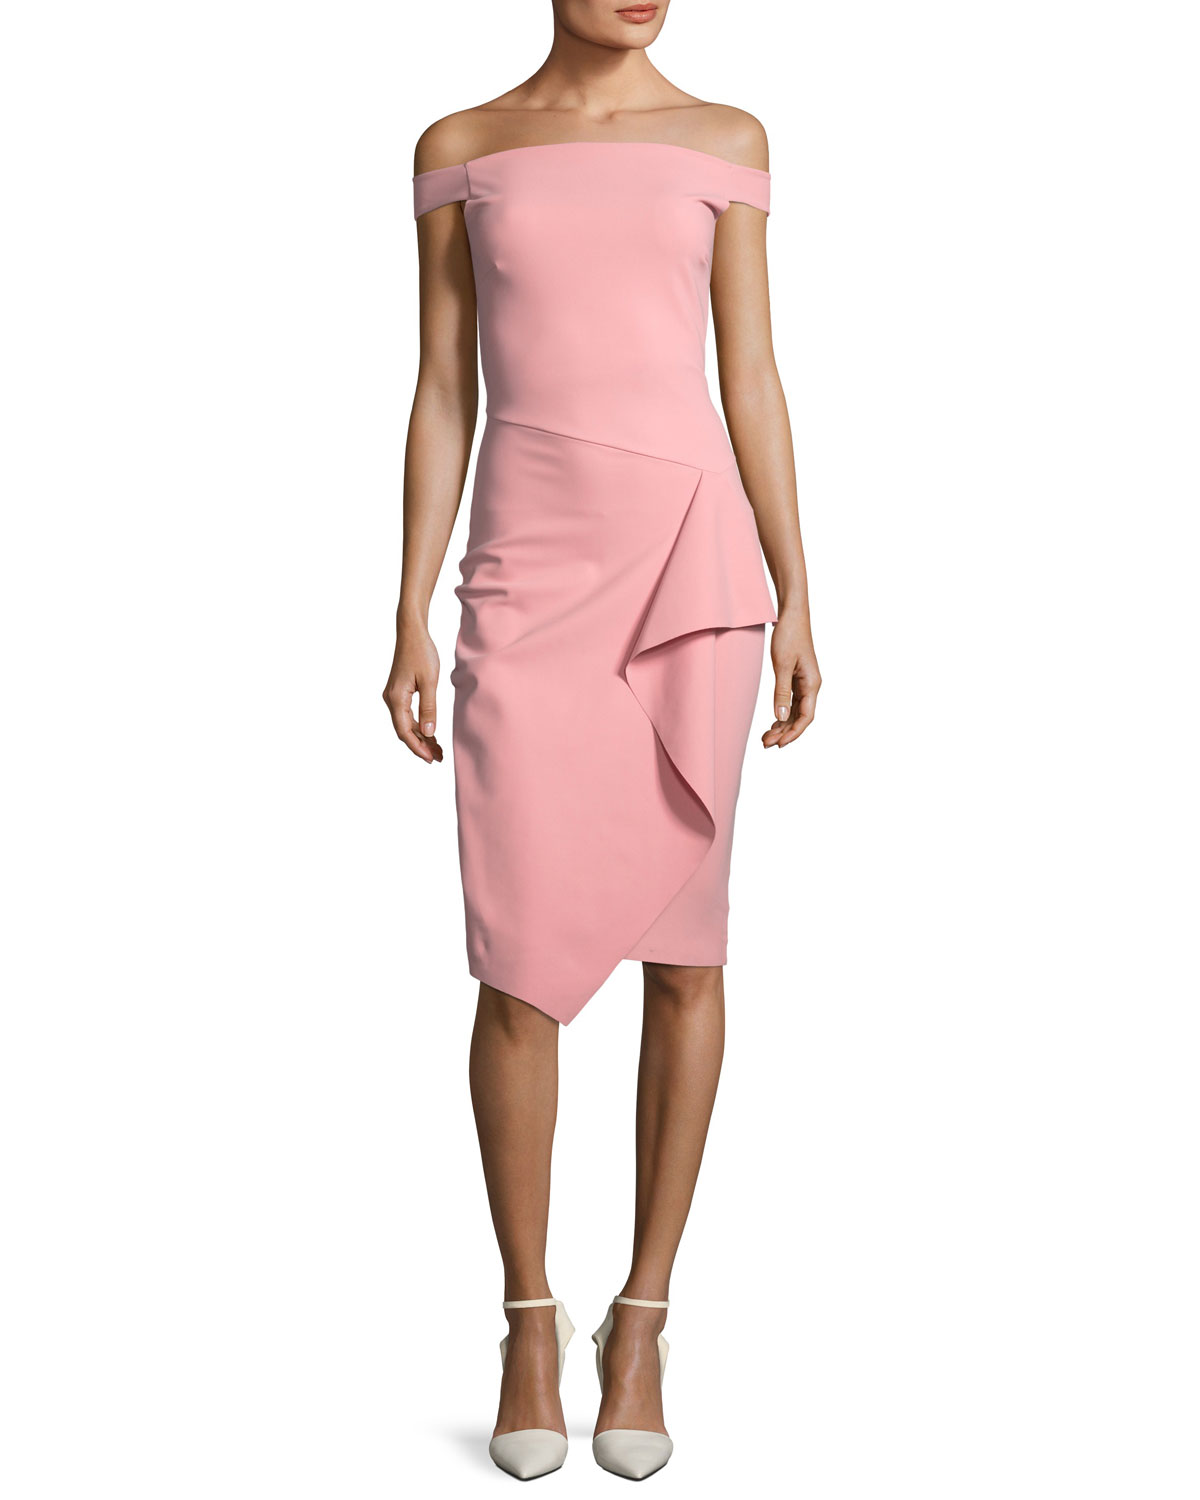 Pink Petite Cocktail Dress | Neiman Marcus